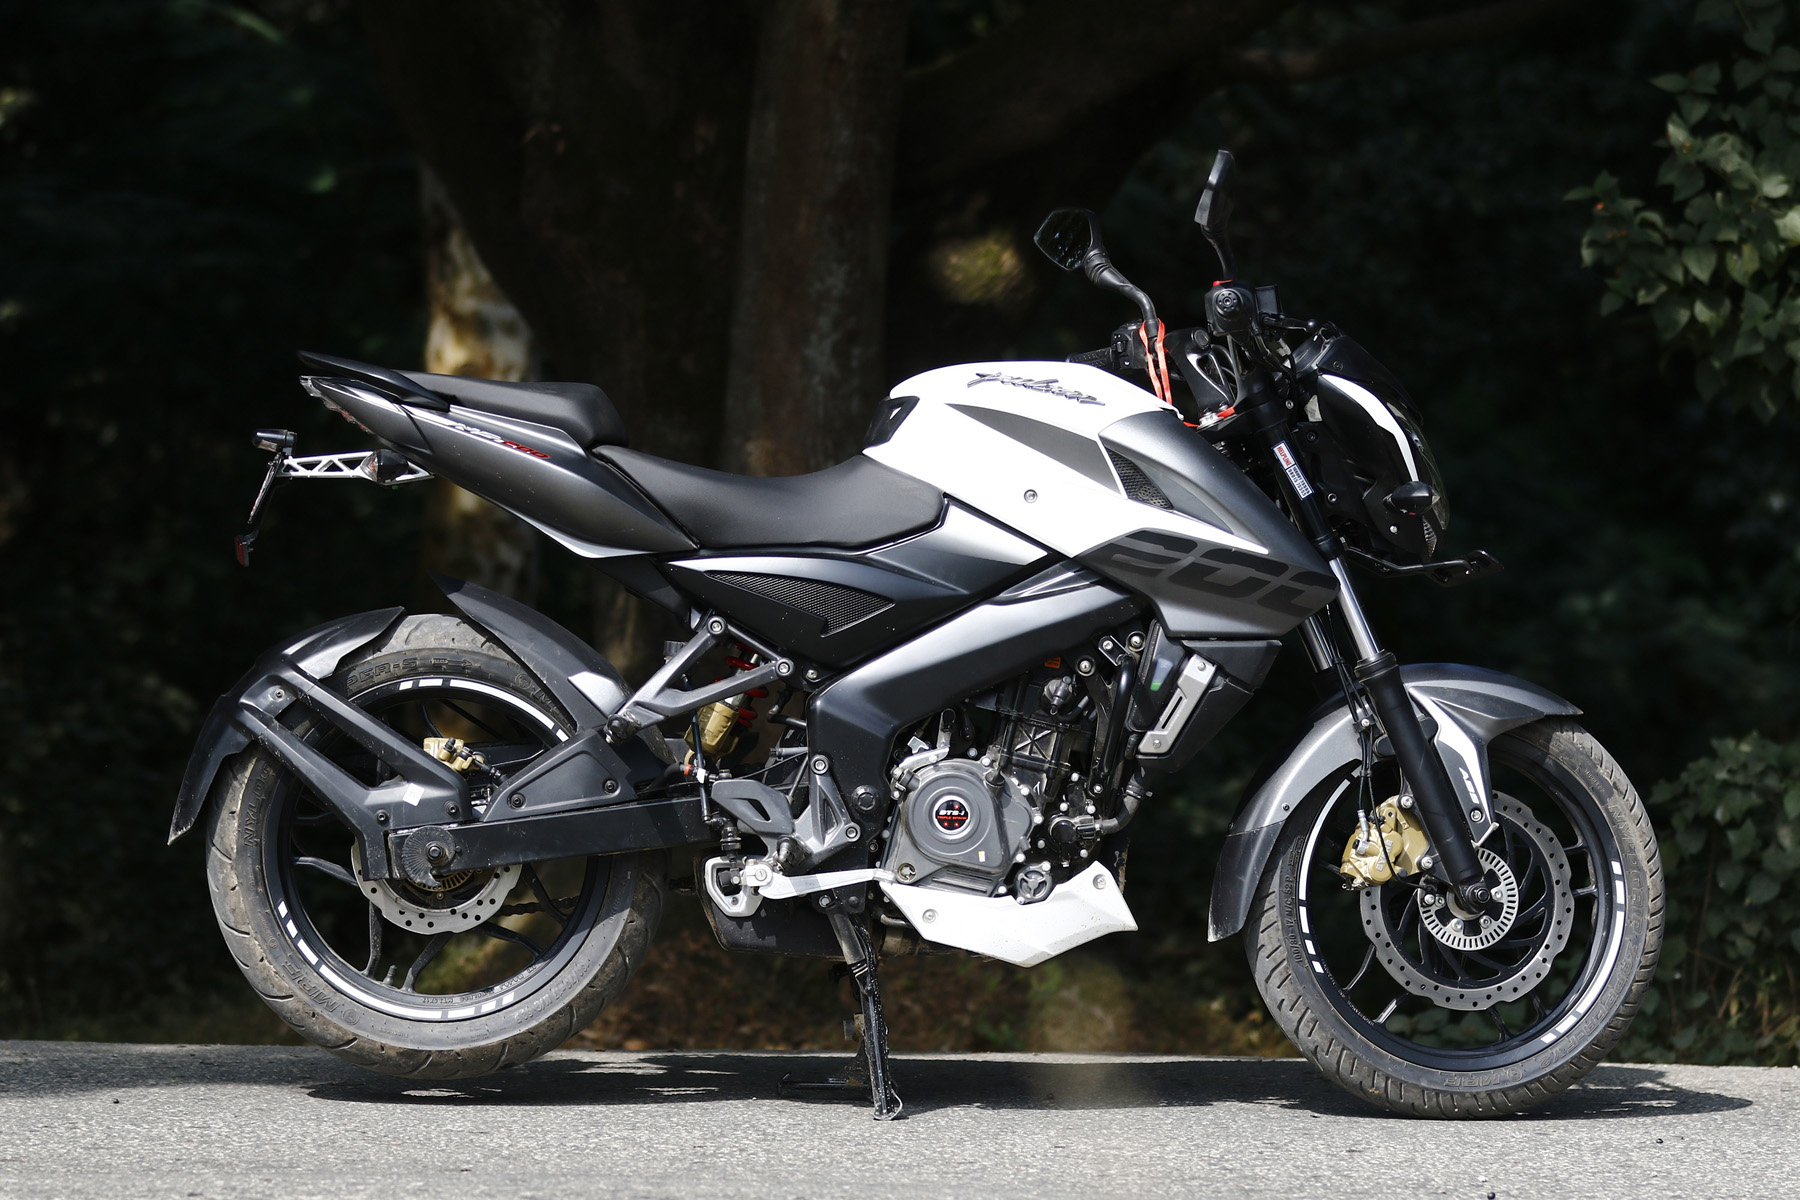 Pulsar 200 Abs Ticking All The Right Boxes